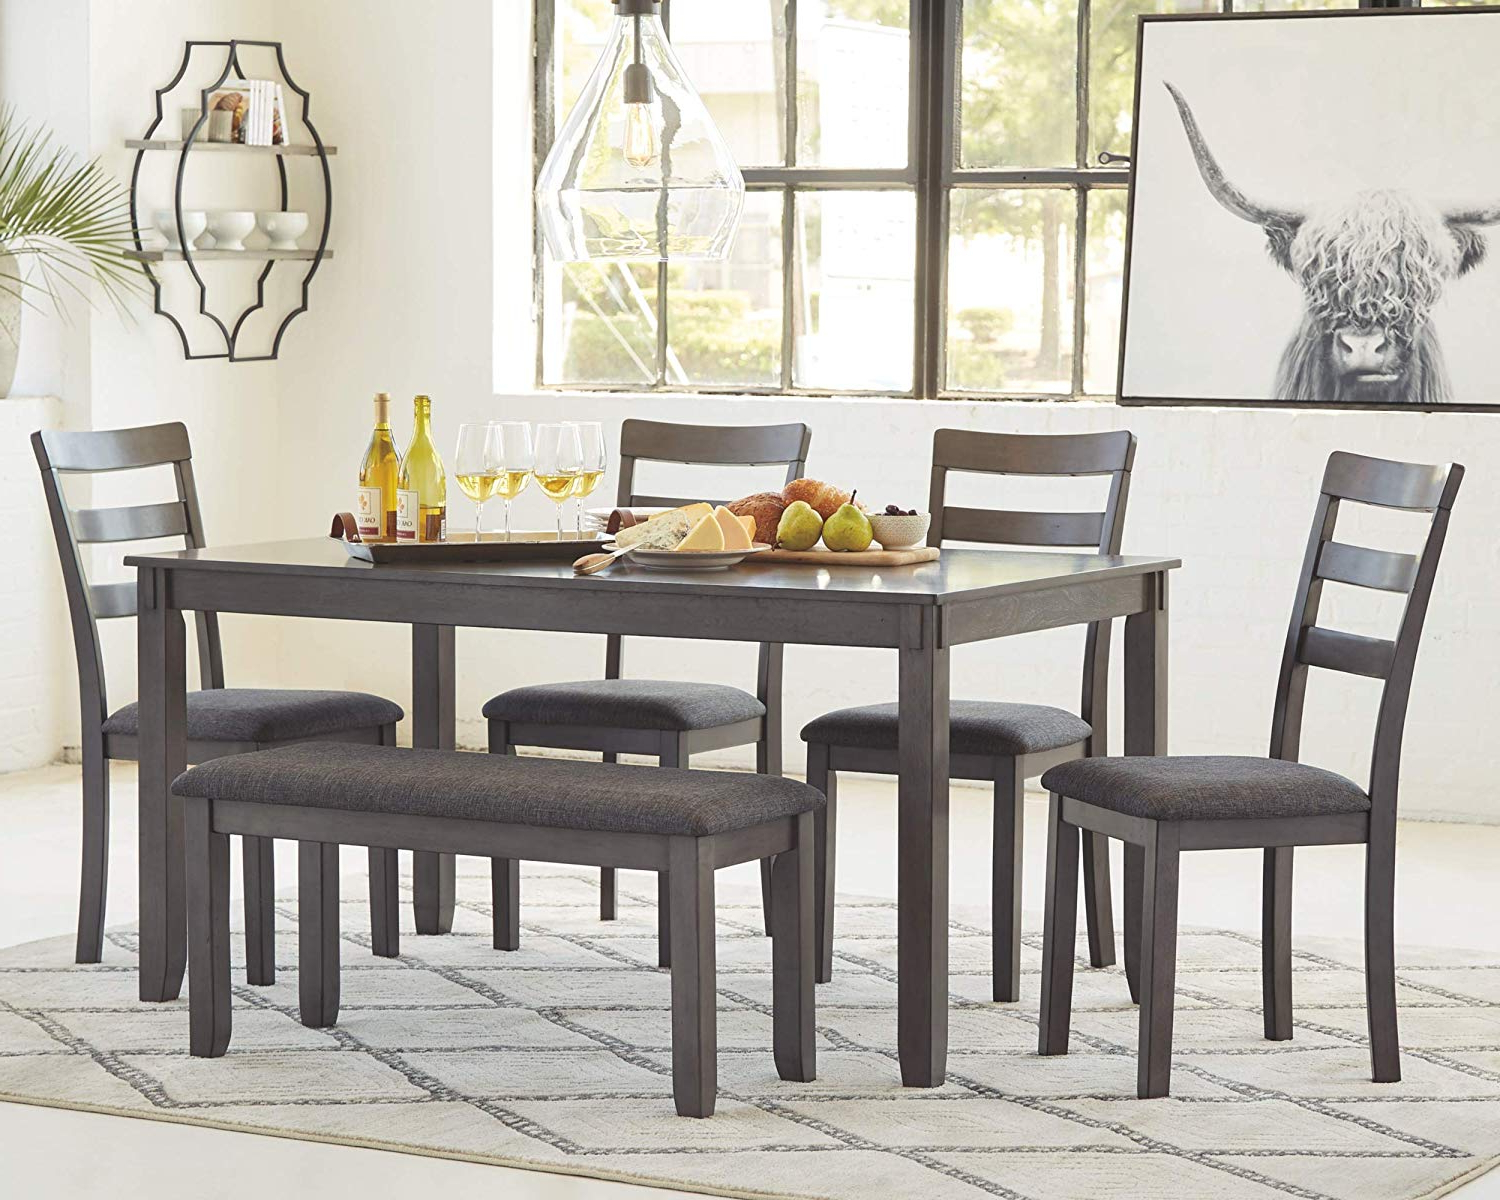 Signature Designashley Bridson Dining Table, Gray In Fashionable Charcoal Transitional 6 Seating Rectangular Dining Tables (View 21 of 25)